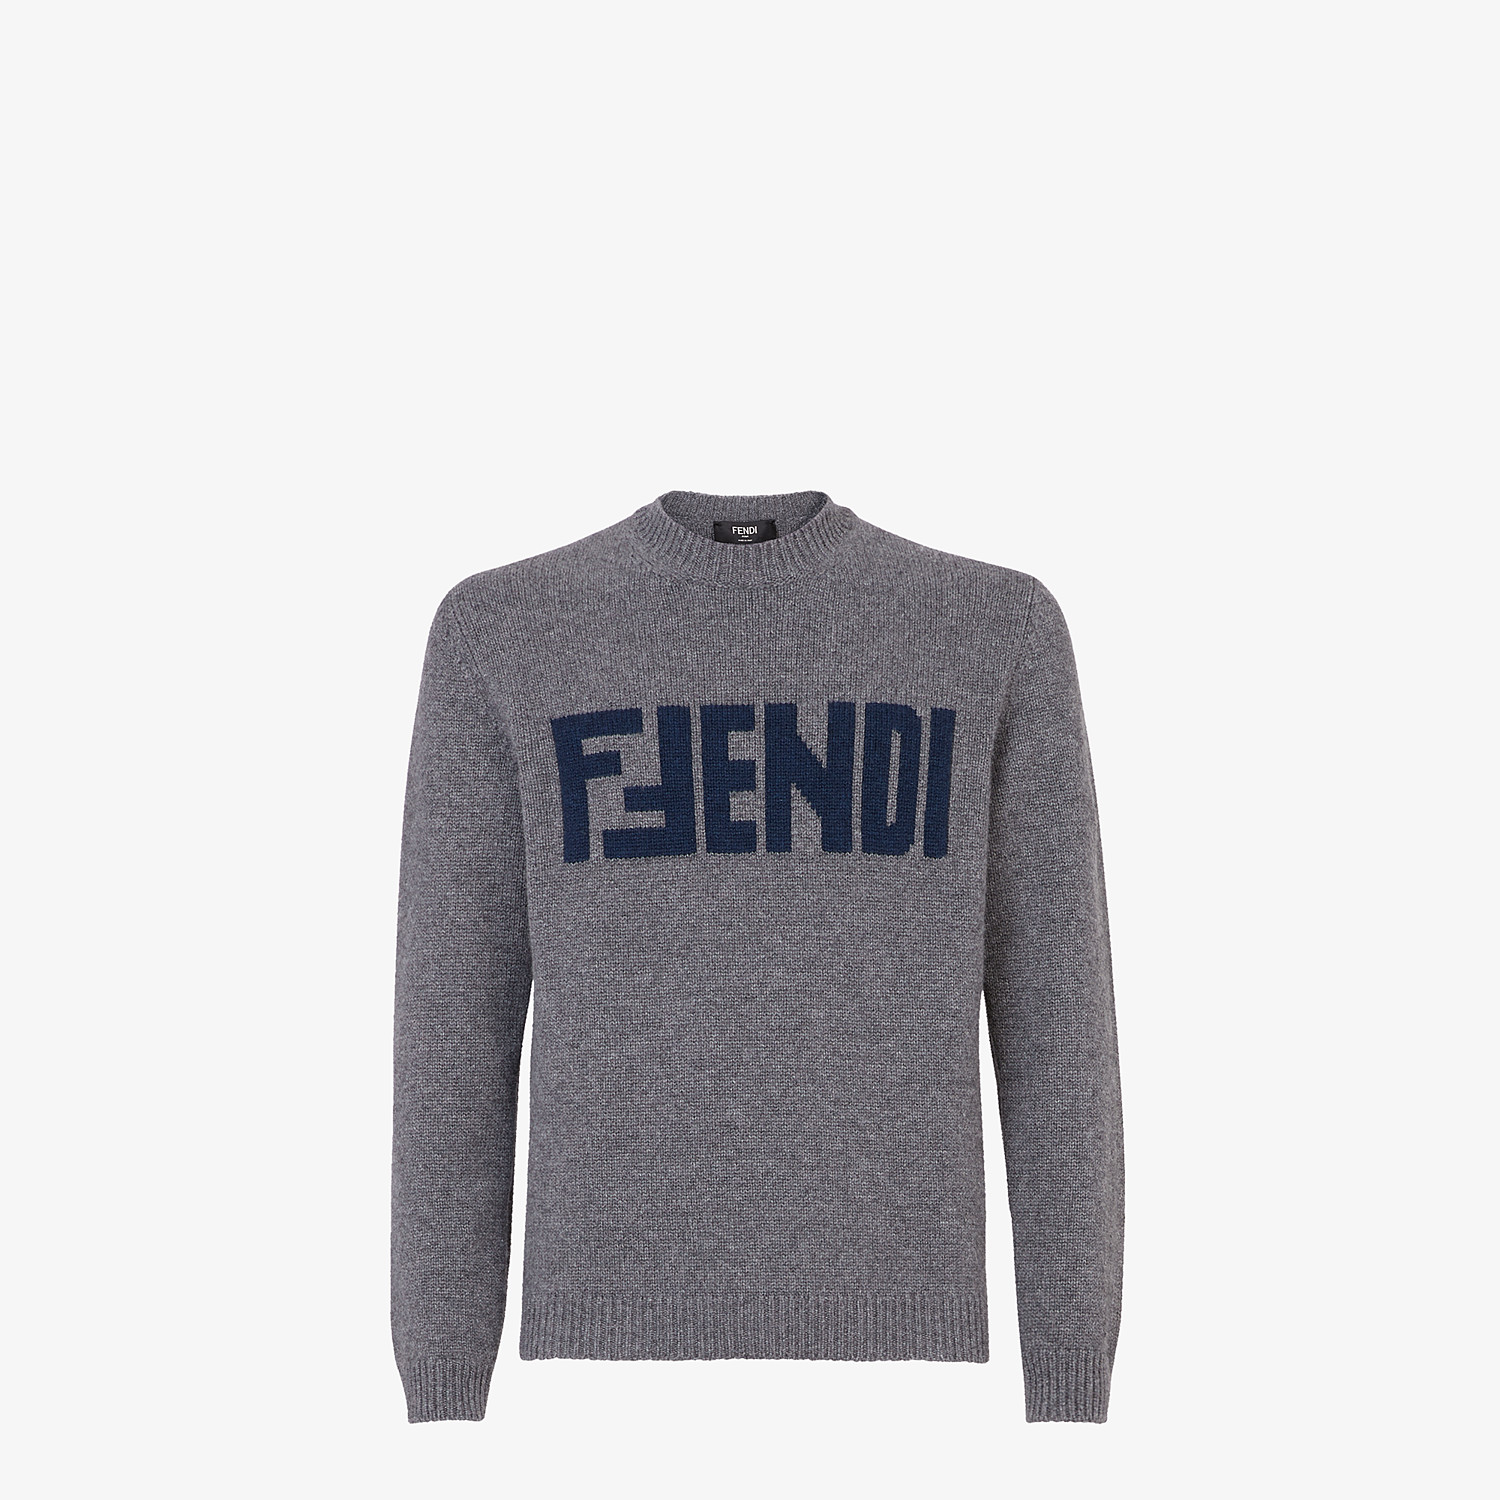 FENDI SWEATER  - Gray cashmere sweater - view 1 detail